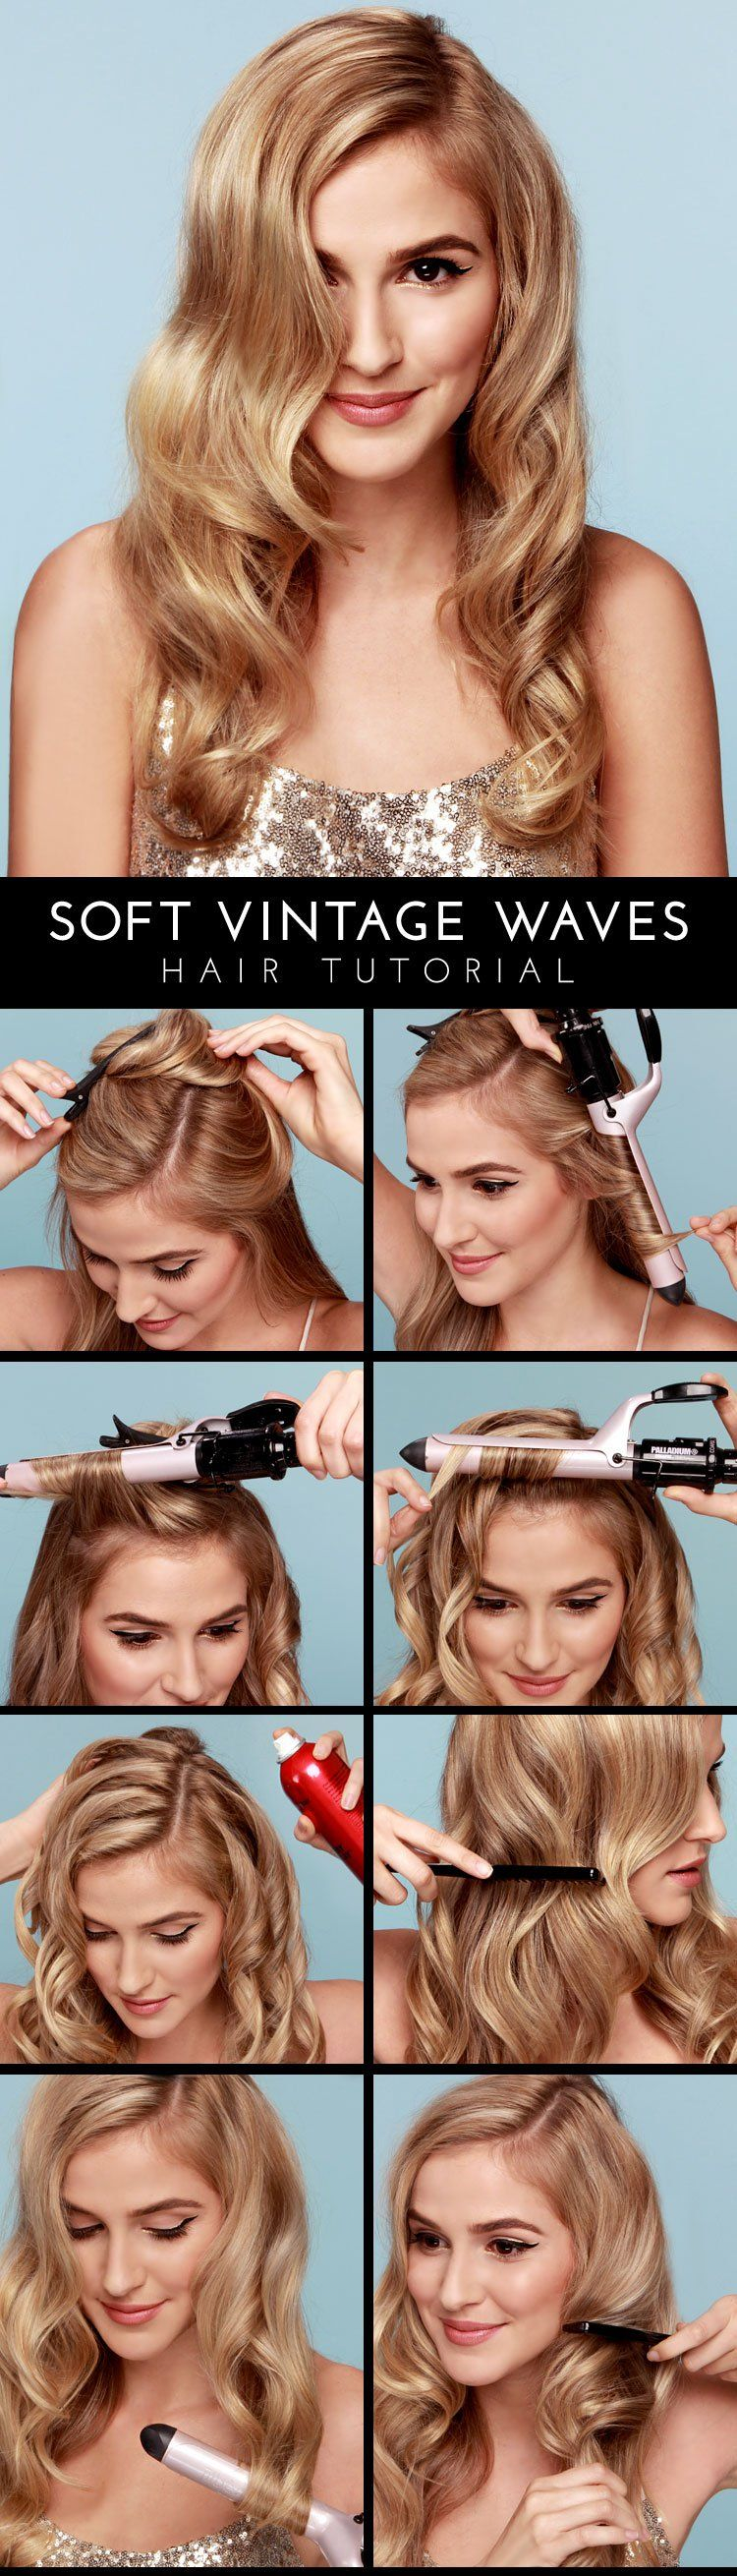 easy yet trendy hairstyle tutorials you will love pinterest